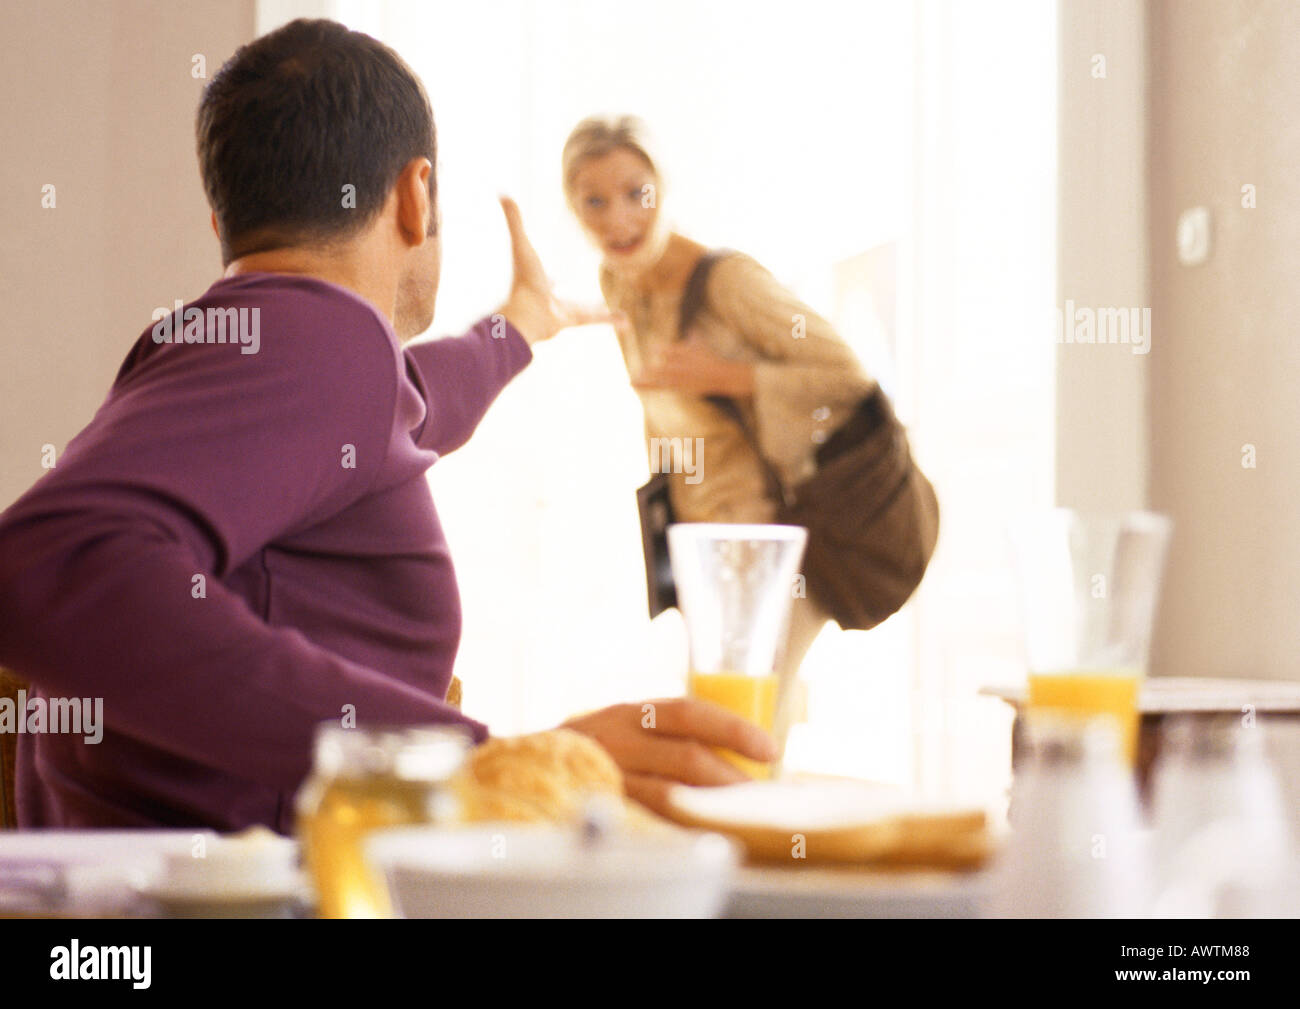 Man gesturing to woman leaving. - Stock Image